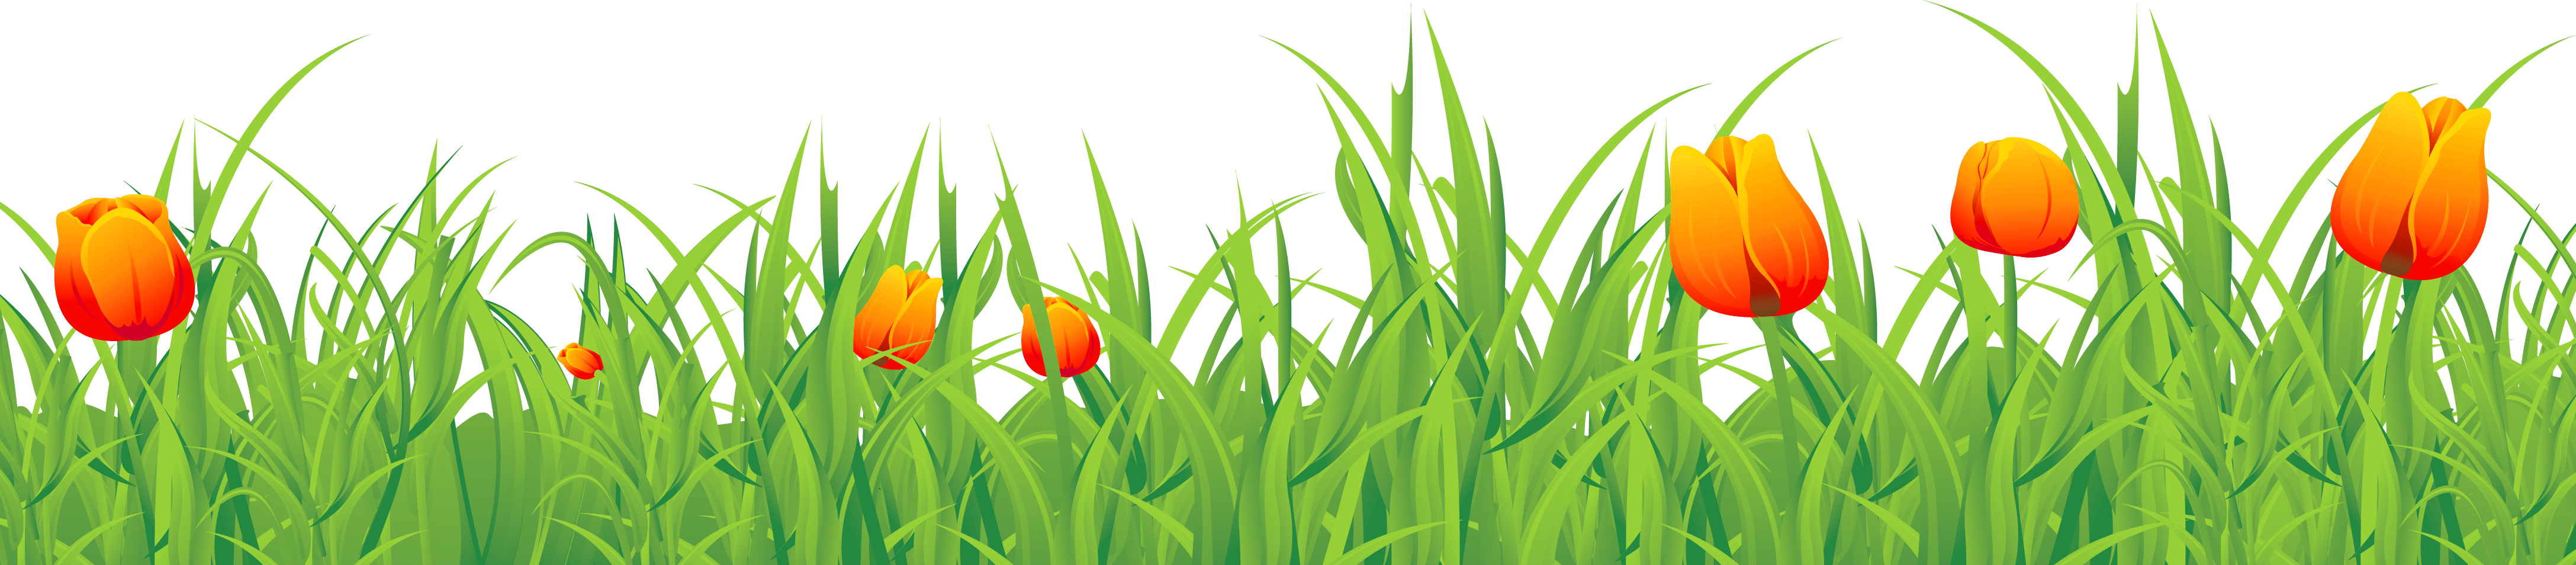 Grass clipart tulip. Ground with tulips png